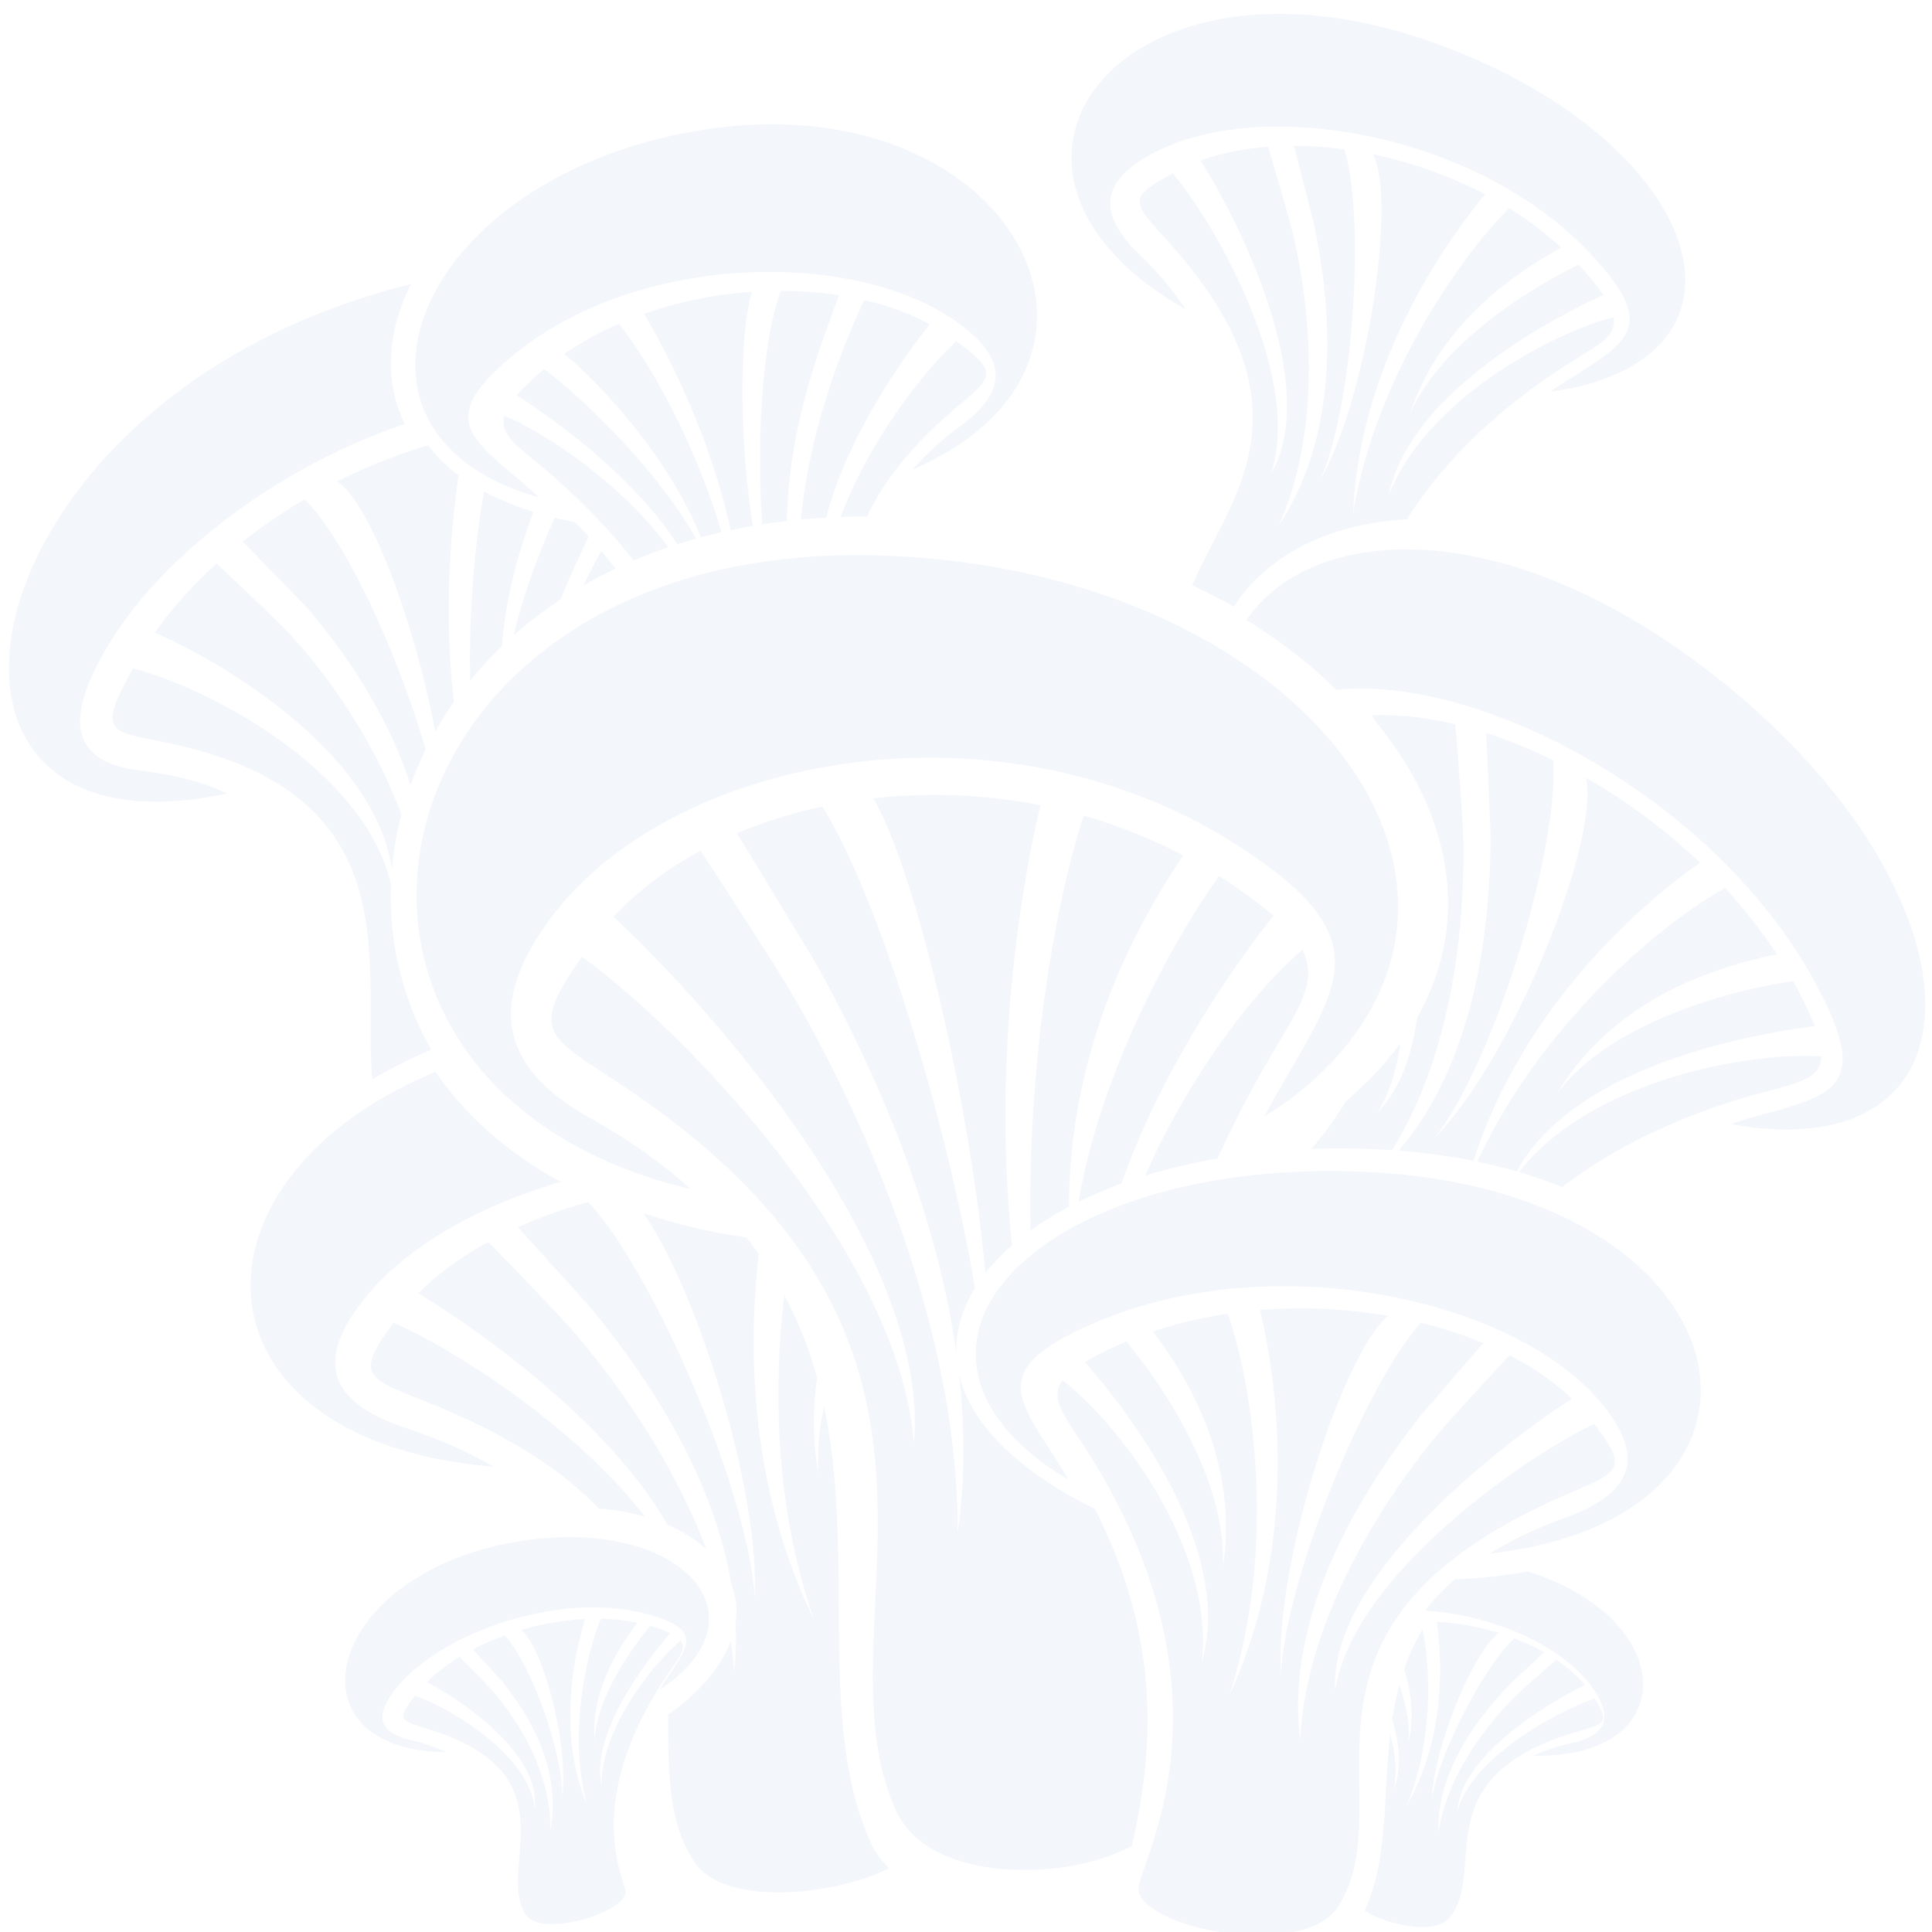 Drawing shrooms group. Resources piedmont mycological society